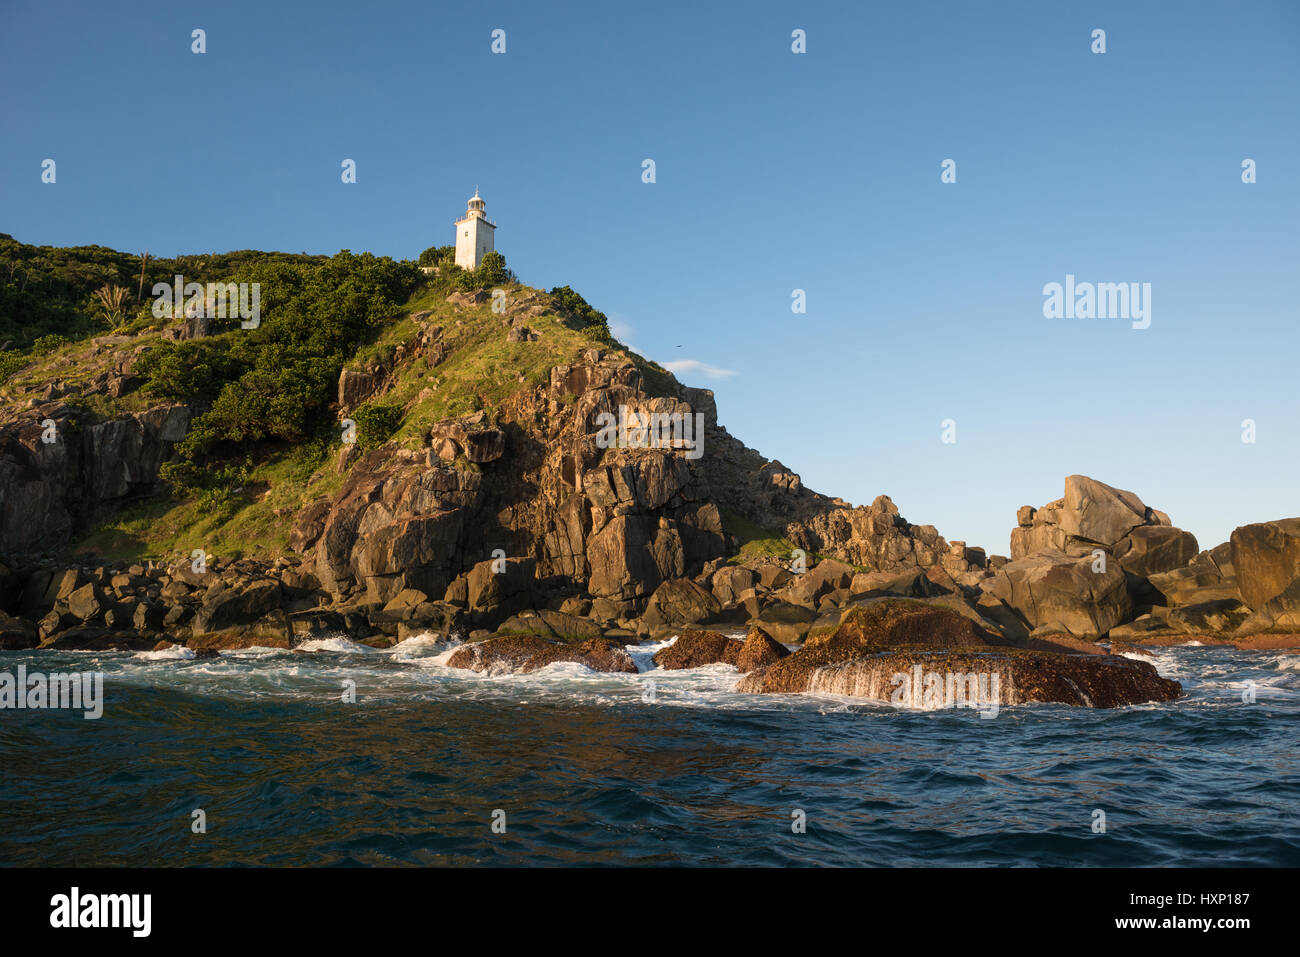 Ponta do Boi lighthouse in Ilhabela Stock Photo